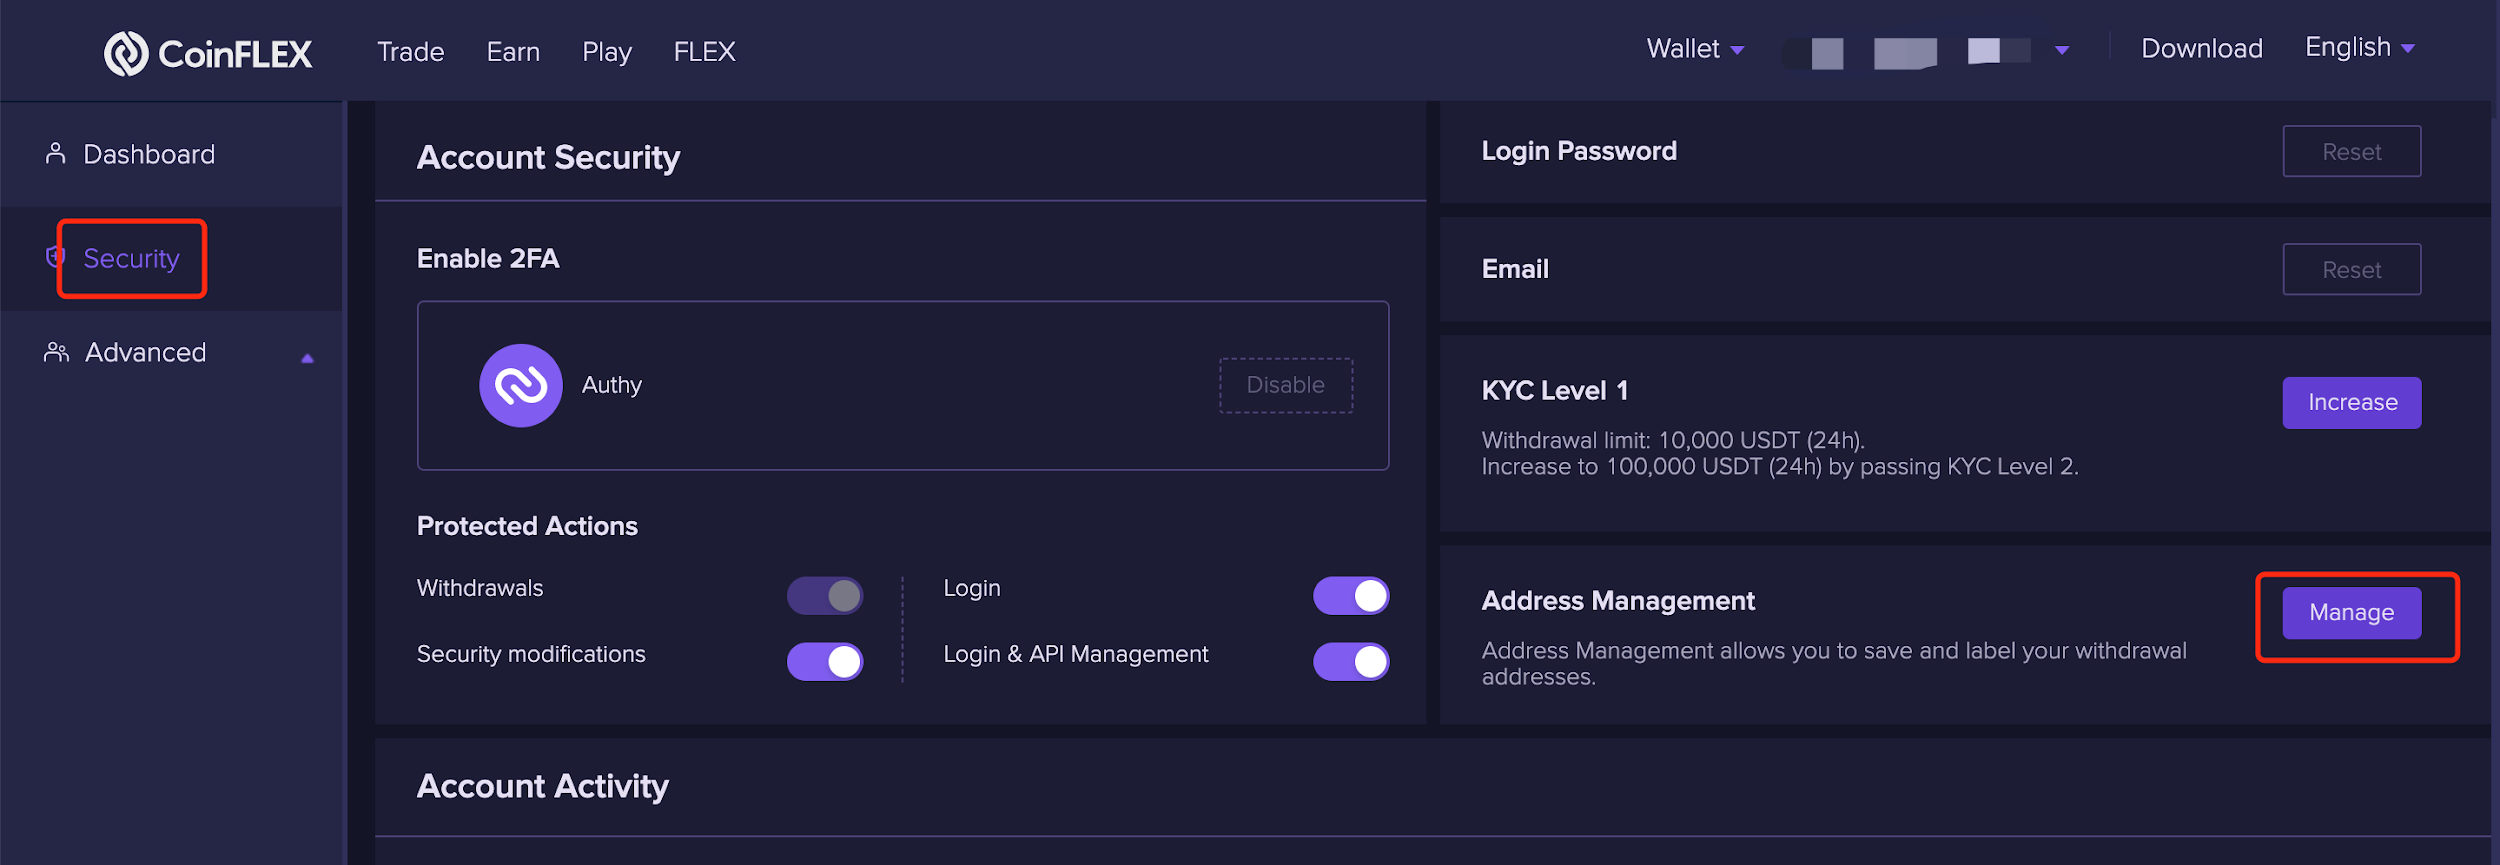 withdraw address 1.1.8 Changing withdrawal address